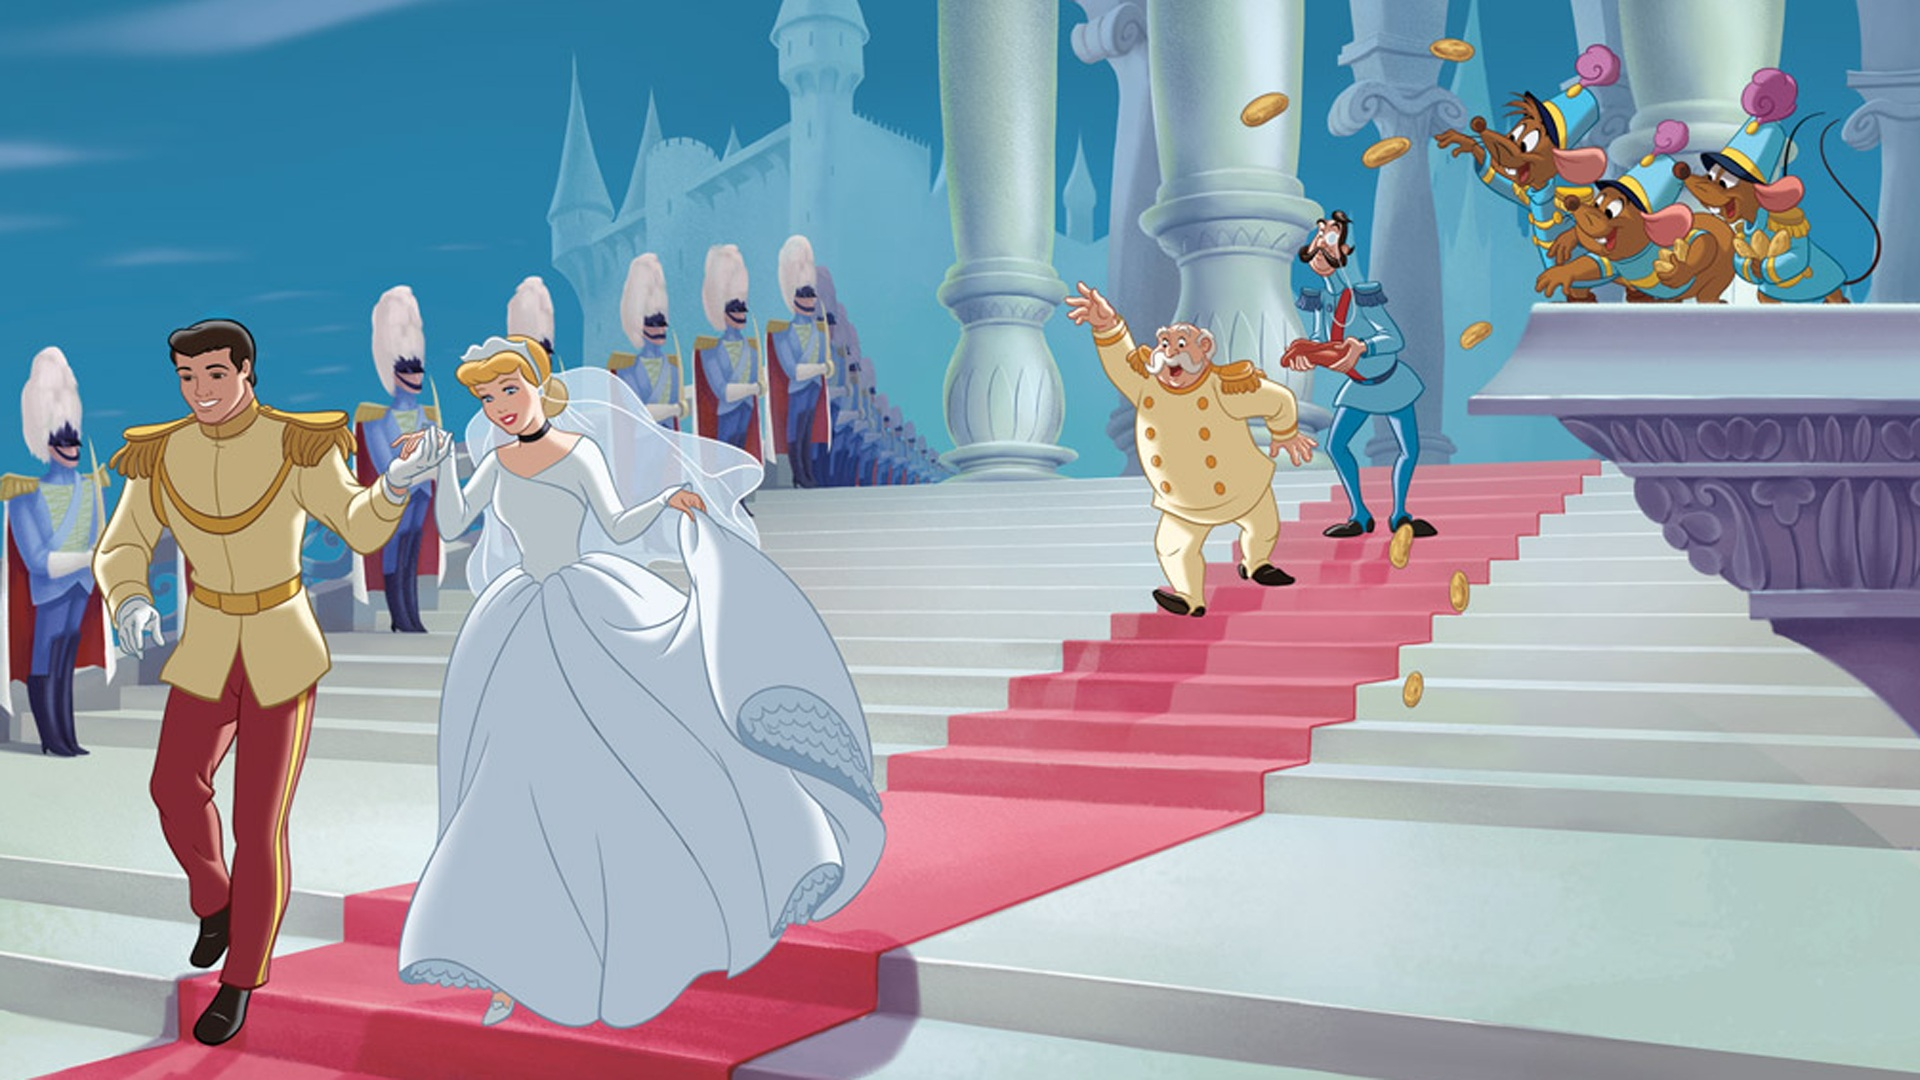 Download Cute Cartoon Couple Wallpapers Wedding On Princess Cinderella And Prince Charming Cartoon